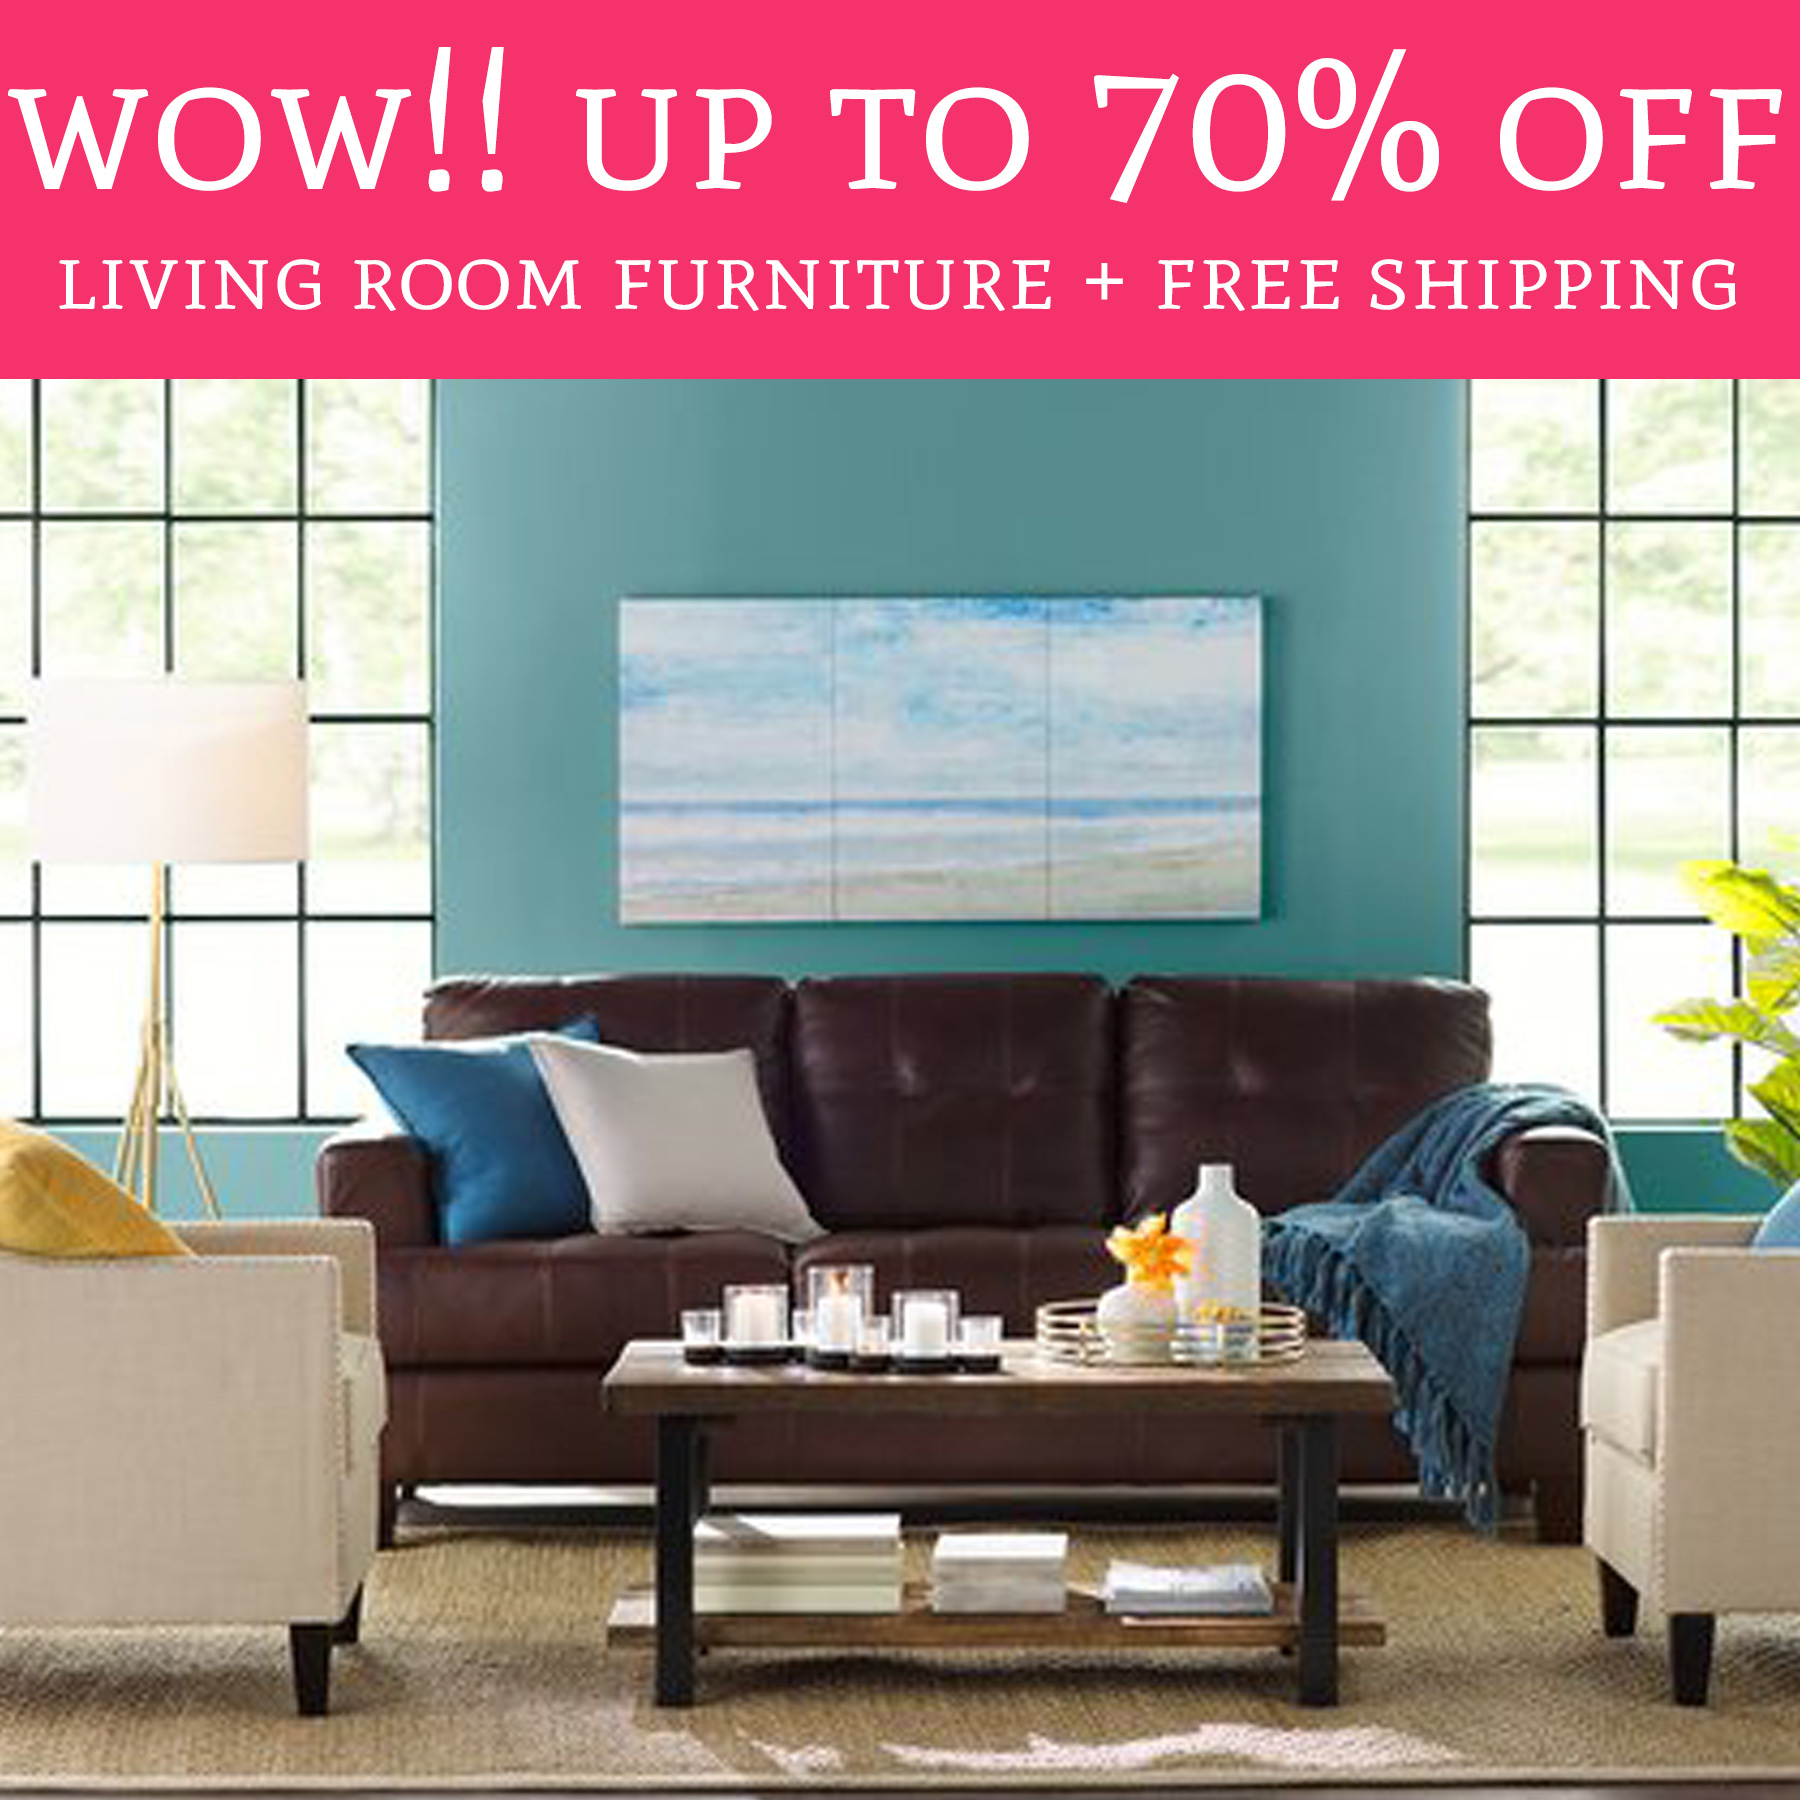 Free Shipping Furniture: Up To 70% Off Living Room Furniture + Free Shipping